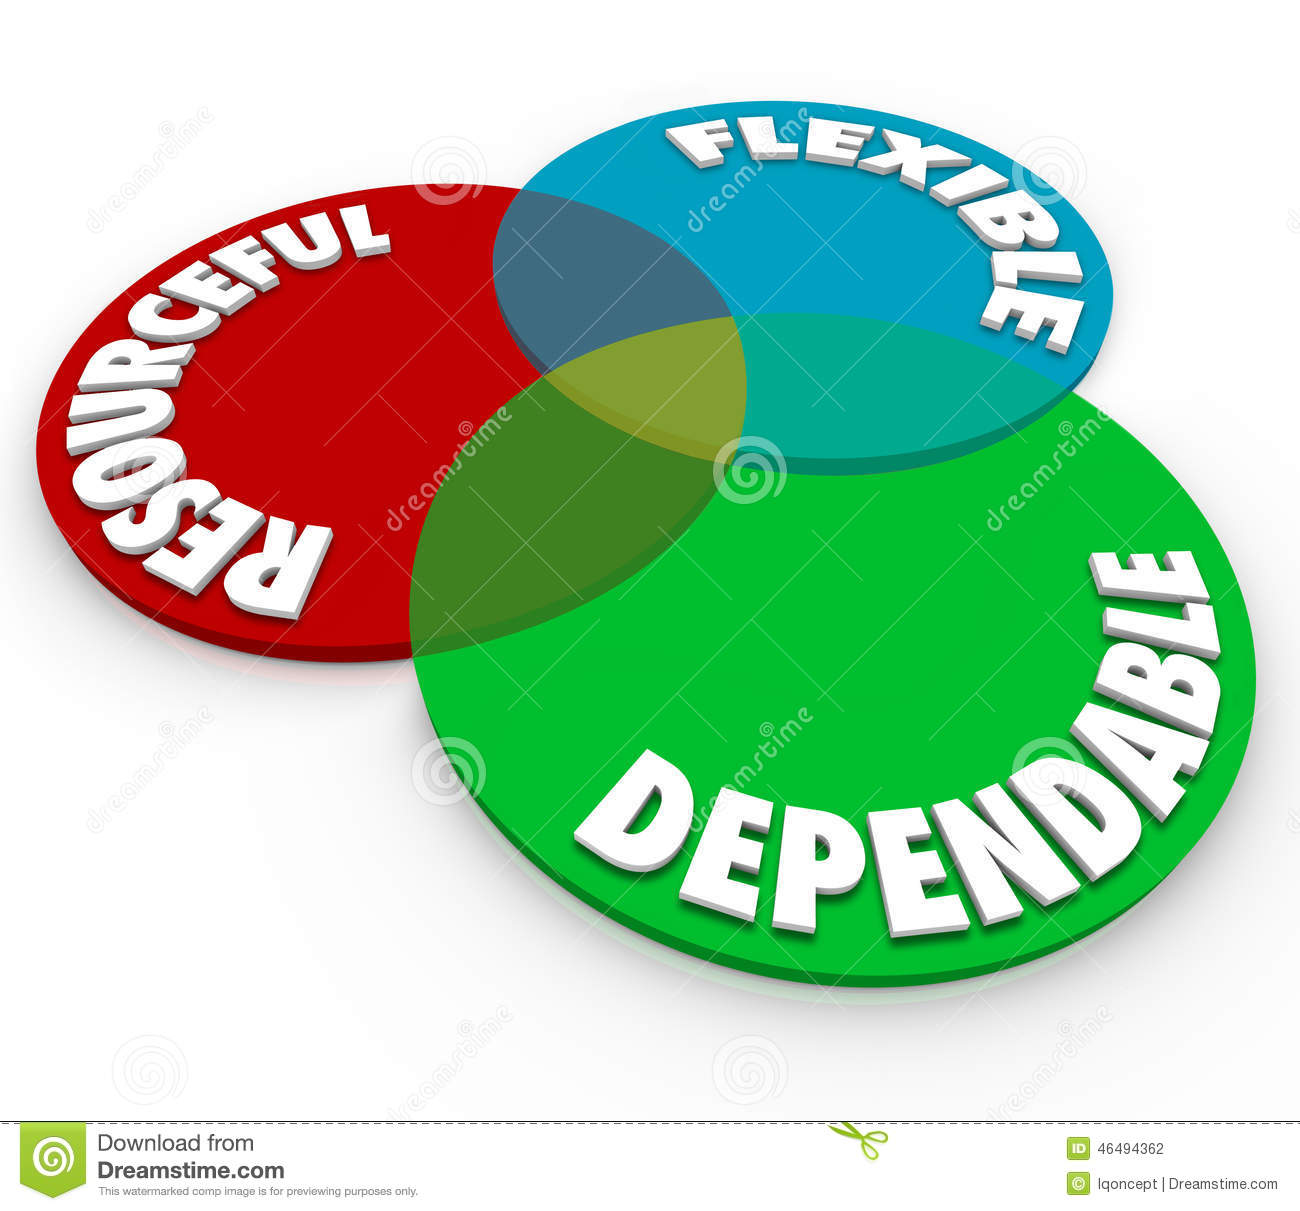 skills venn diagram personal transferable work related stock dependable resourceful flexible 3d words venn diagram stock photography